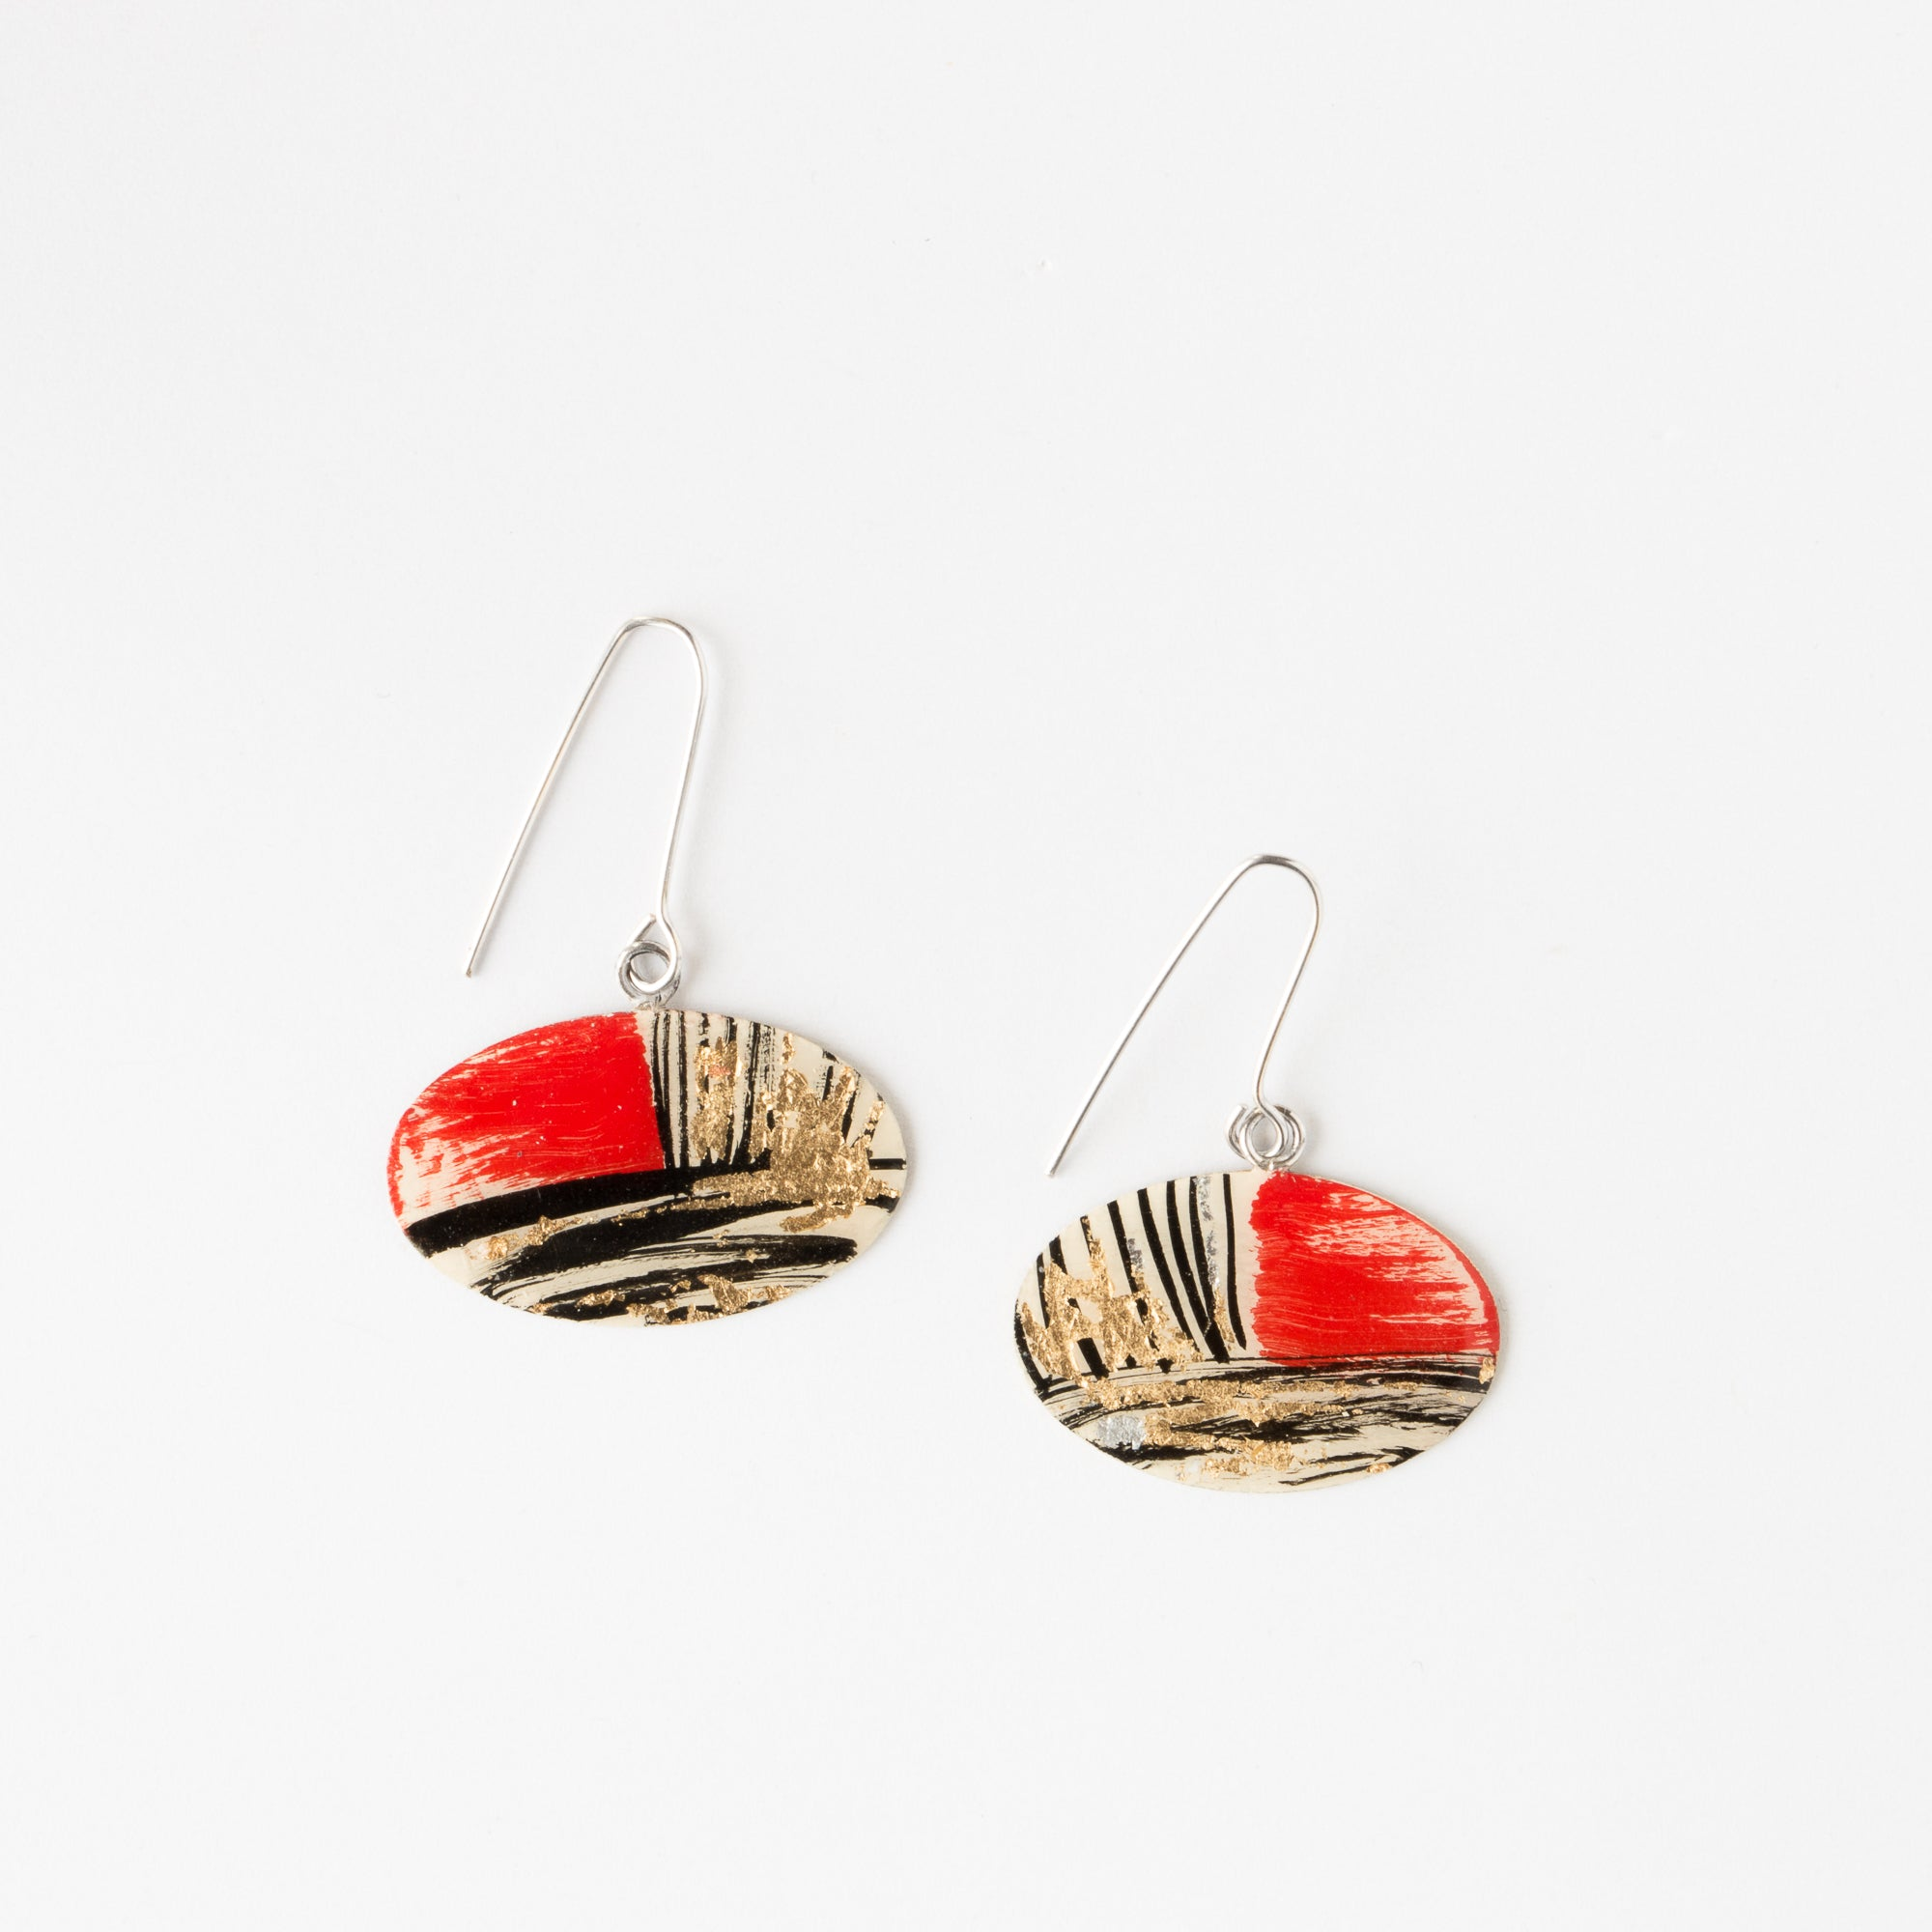 635-2 - Oval Contemporary Earrings Painted on Brass - Sold by Chic & Basta